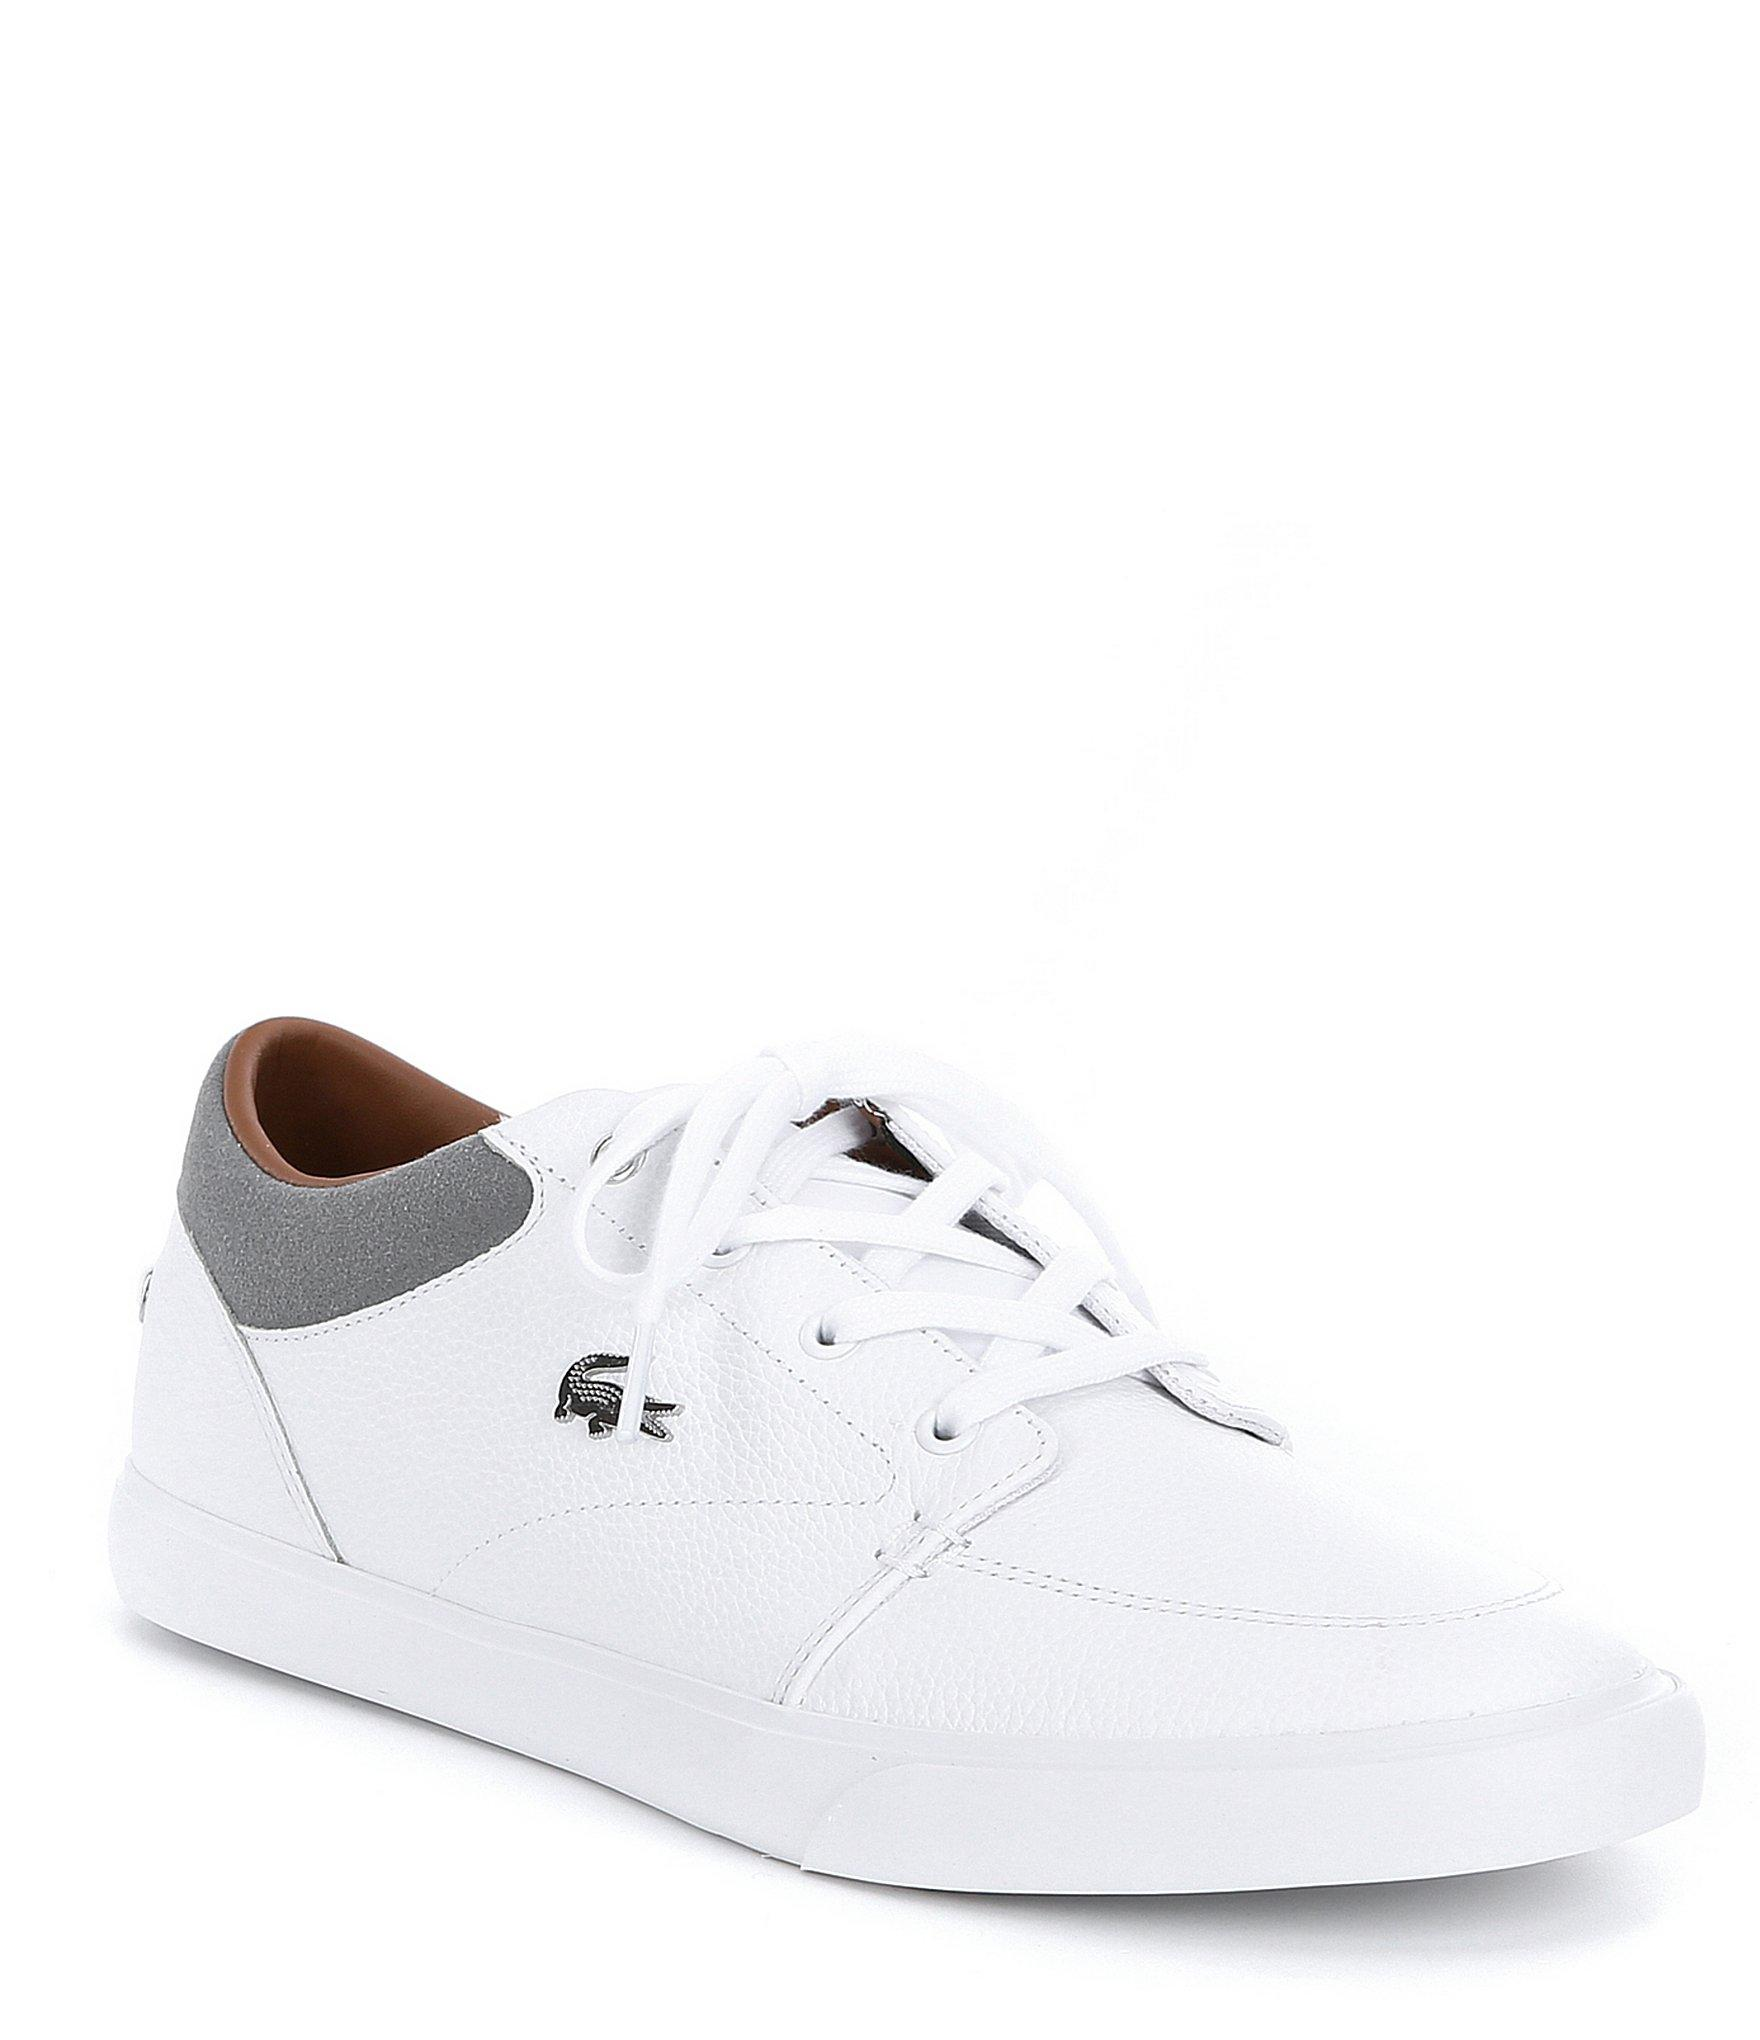 cc4a482f1db2b6 Lyst - Lacoste Men s Bayliss 118 Sneakers in Gray for Men